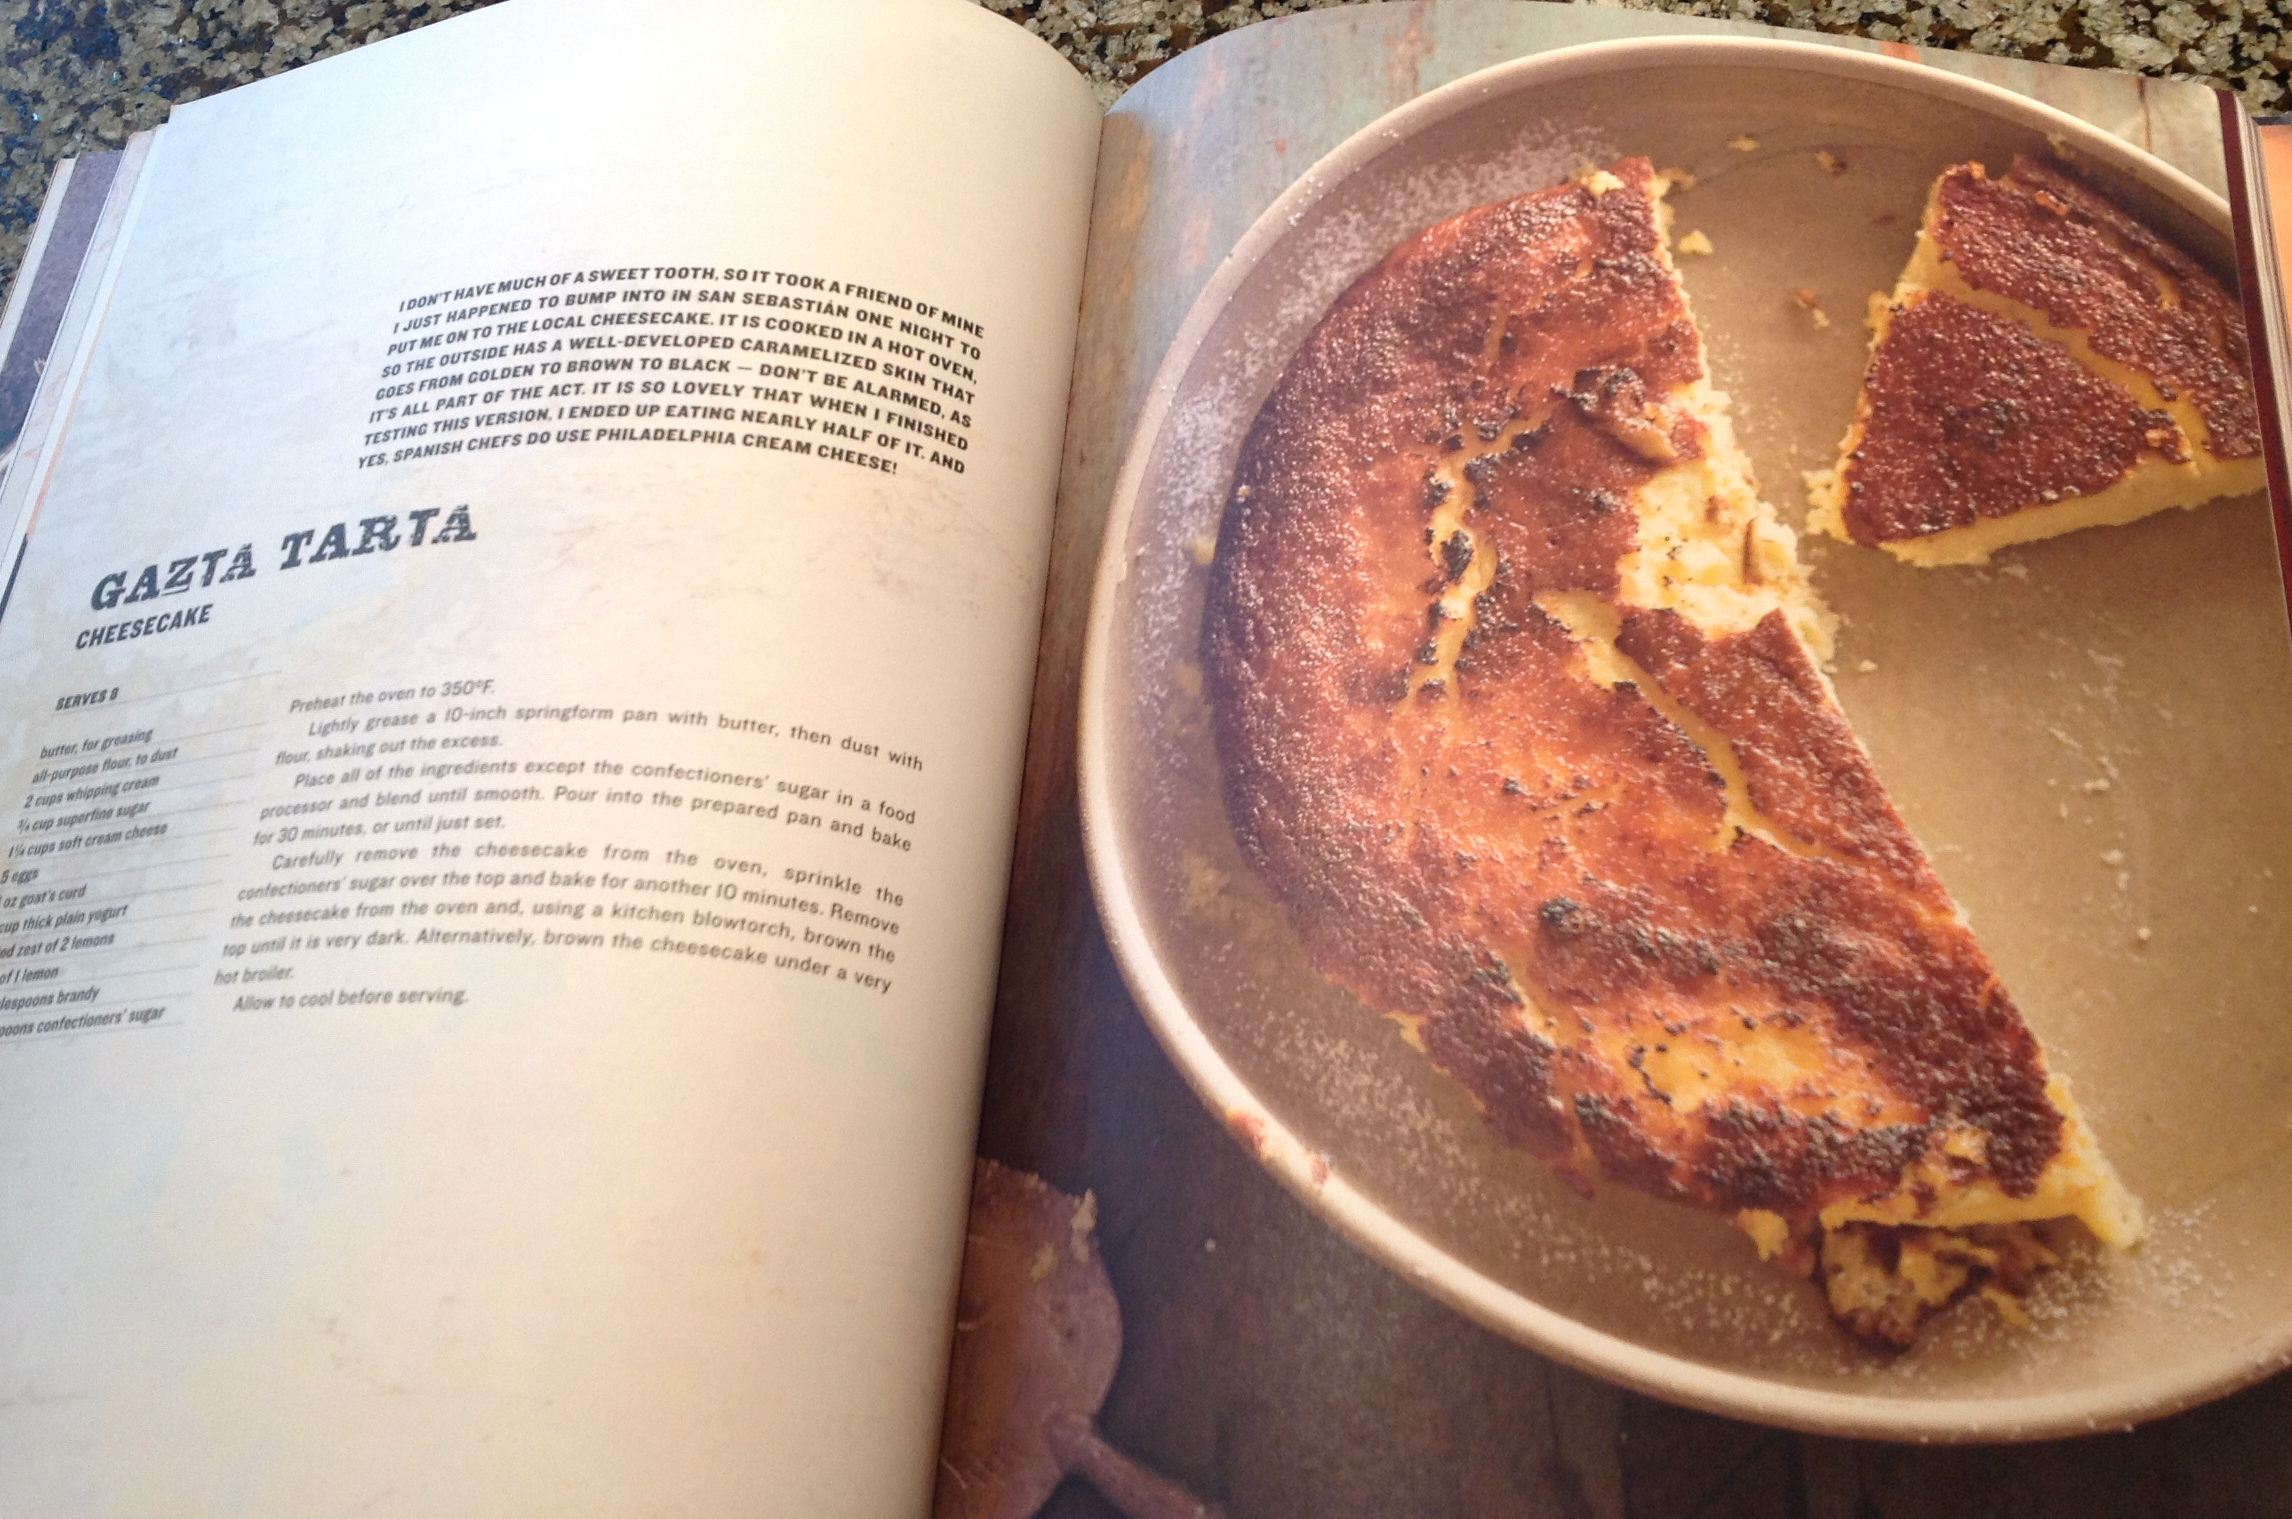 The Gatza Tarta from RUSTICA A Return to Spanish Home Cooking by Frank Camorra and Richard Cornish